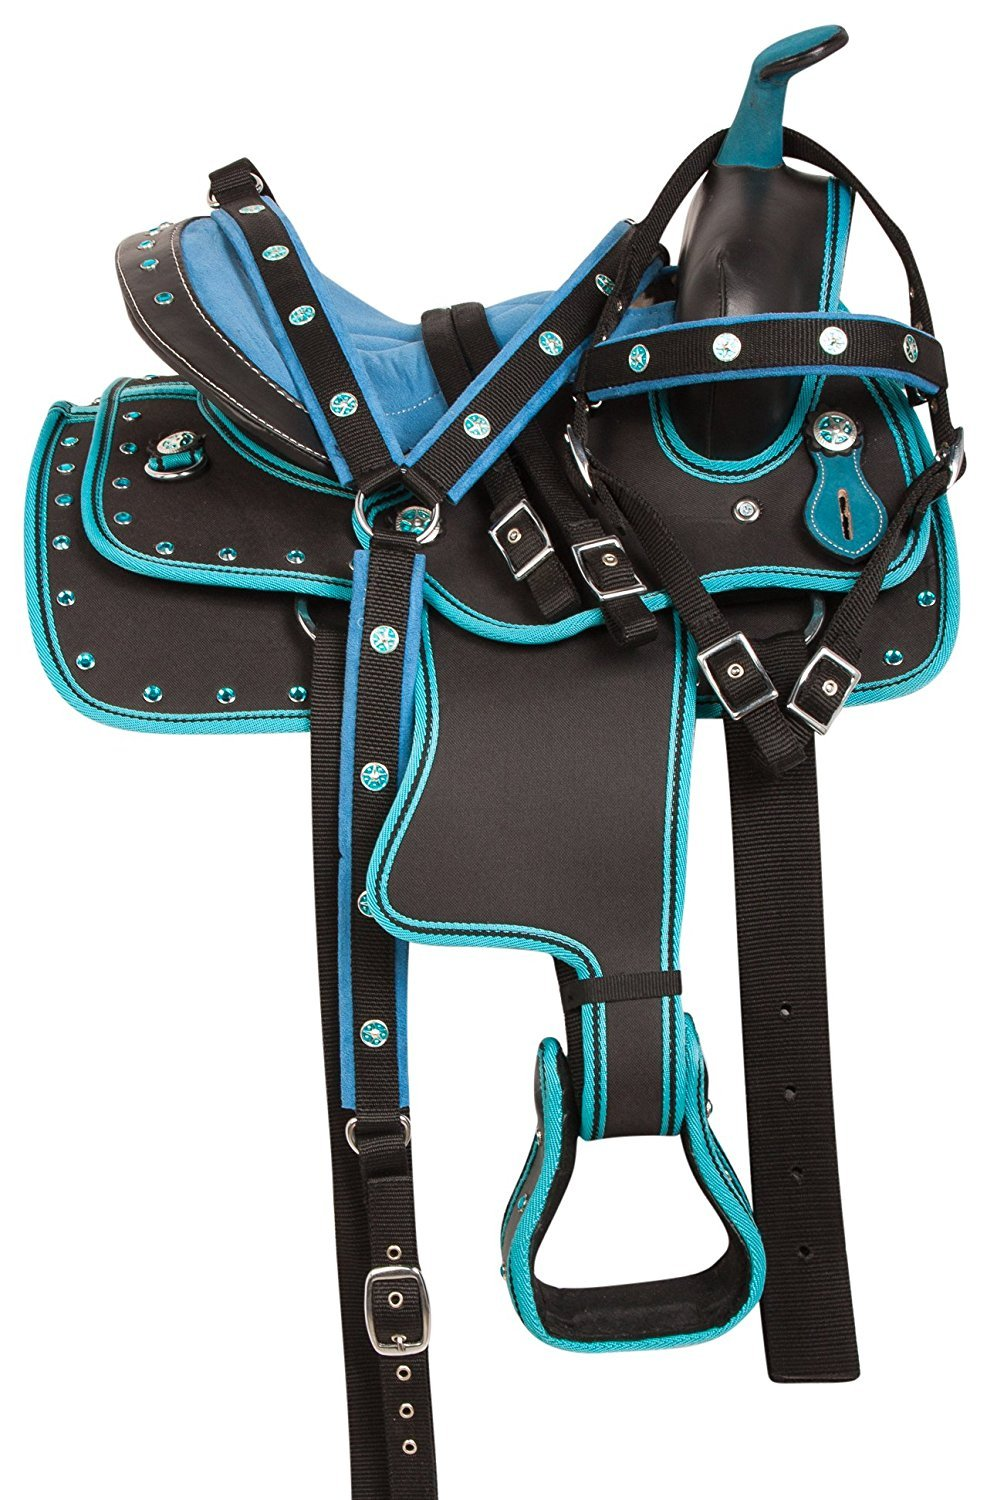 bluee 16 Inch SeatManaal Enterprises Synthetic Western Horse Saddle Barrel Racing Tack + Headstall, Breast Collar Size 15  to 18  Inch Seat Available